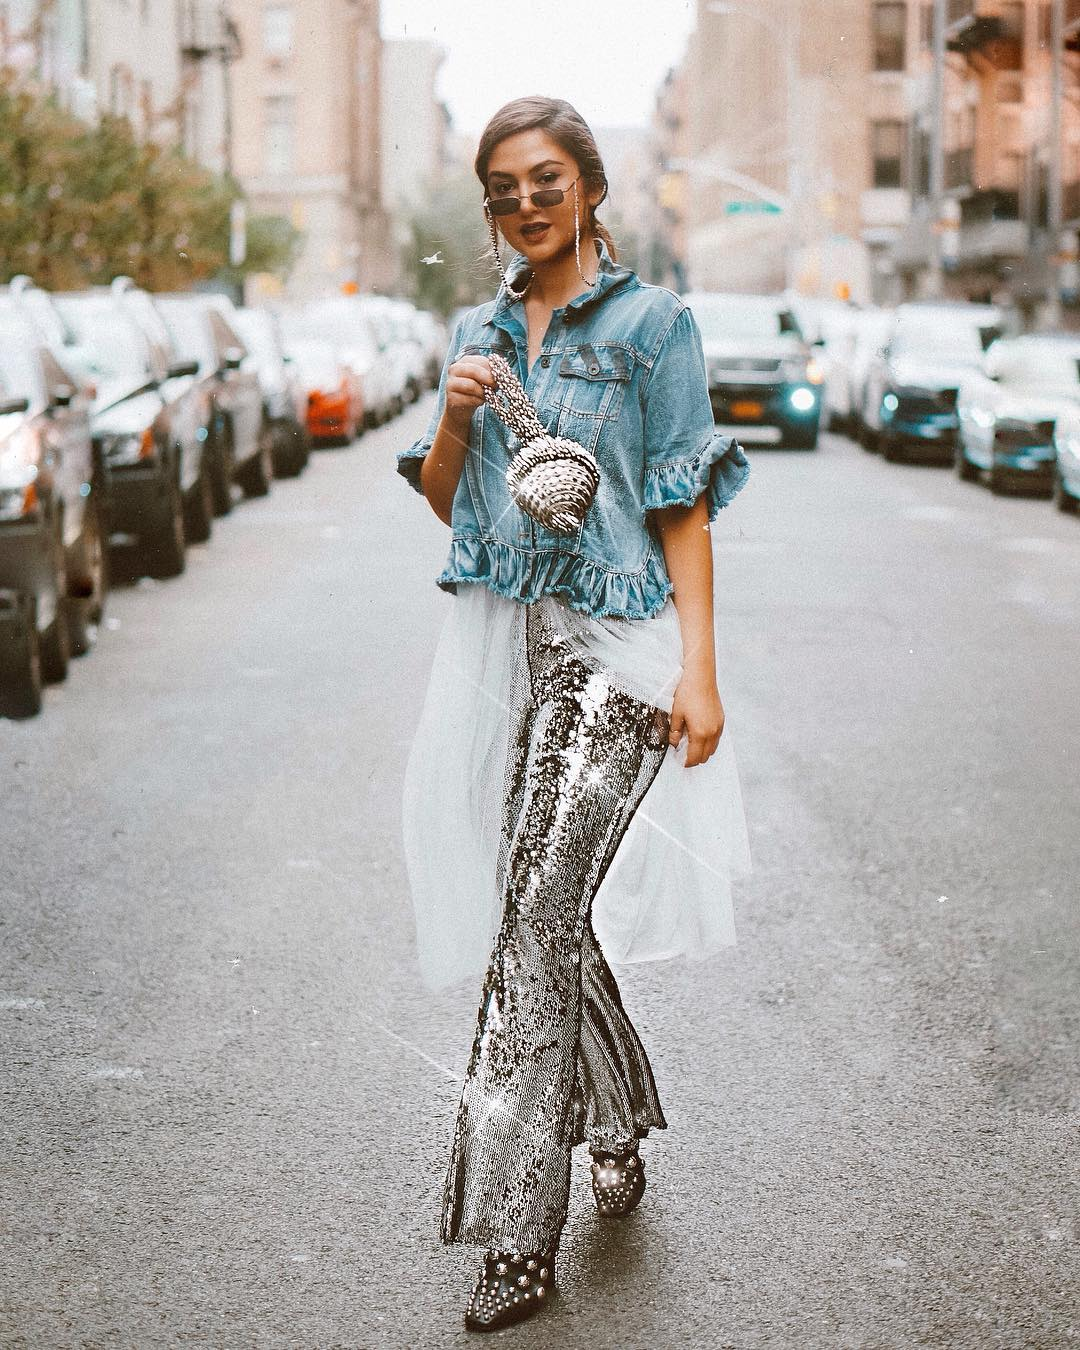 Lexiconofstyle's, Alexandra Dieck  spotted wearing the Simi Sparkle at New York Fashion Week street style. 15th September 2018. Mae Cassidy Silver clutch bag. handbag clutch bag bohoo kendall and kylie wrenandglory alexanderwangny Alexander wang studded boots nowandzenpr goodley bullen pr clutch denim jacket wren + glory sparkly trousers